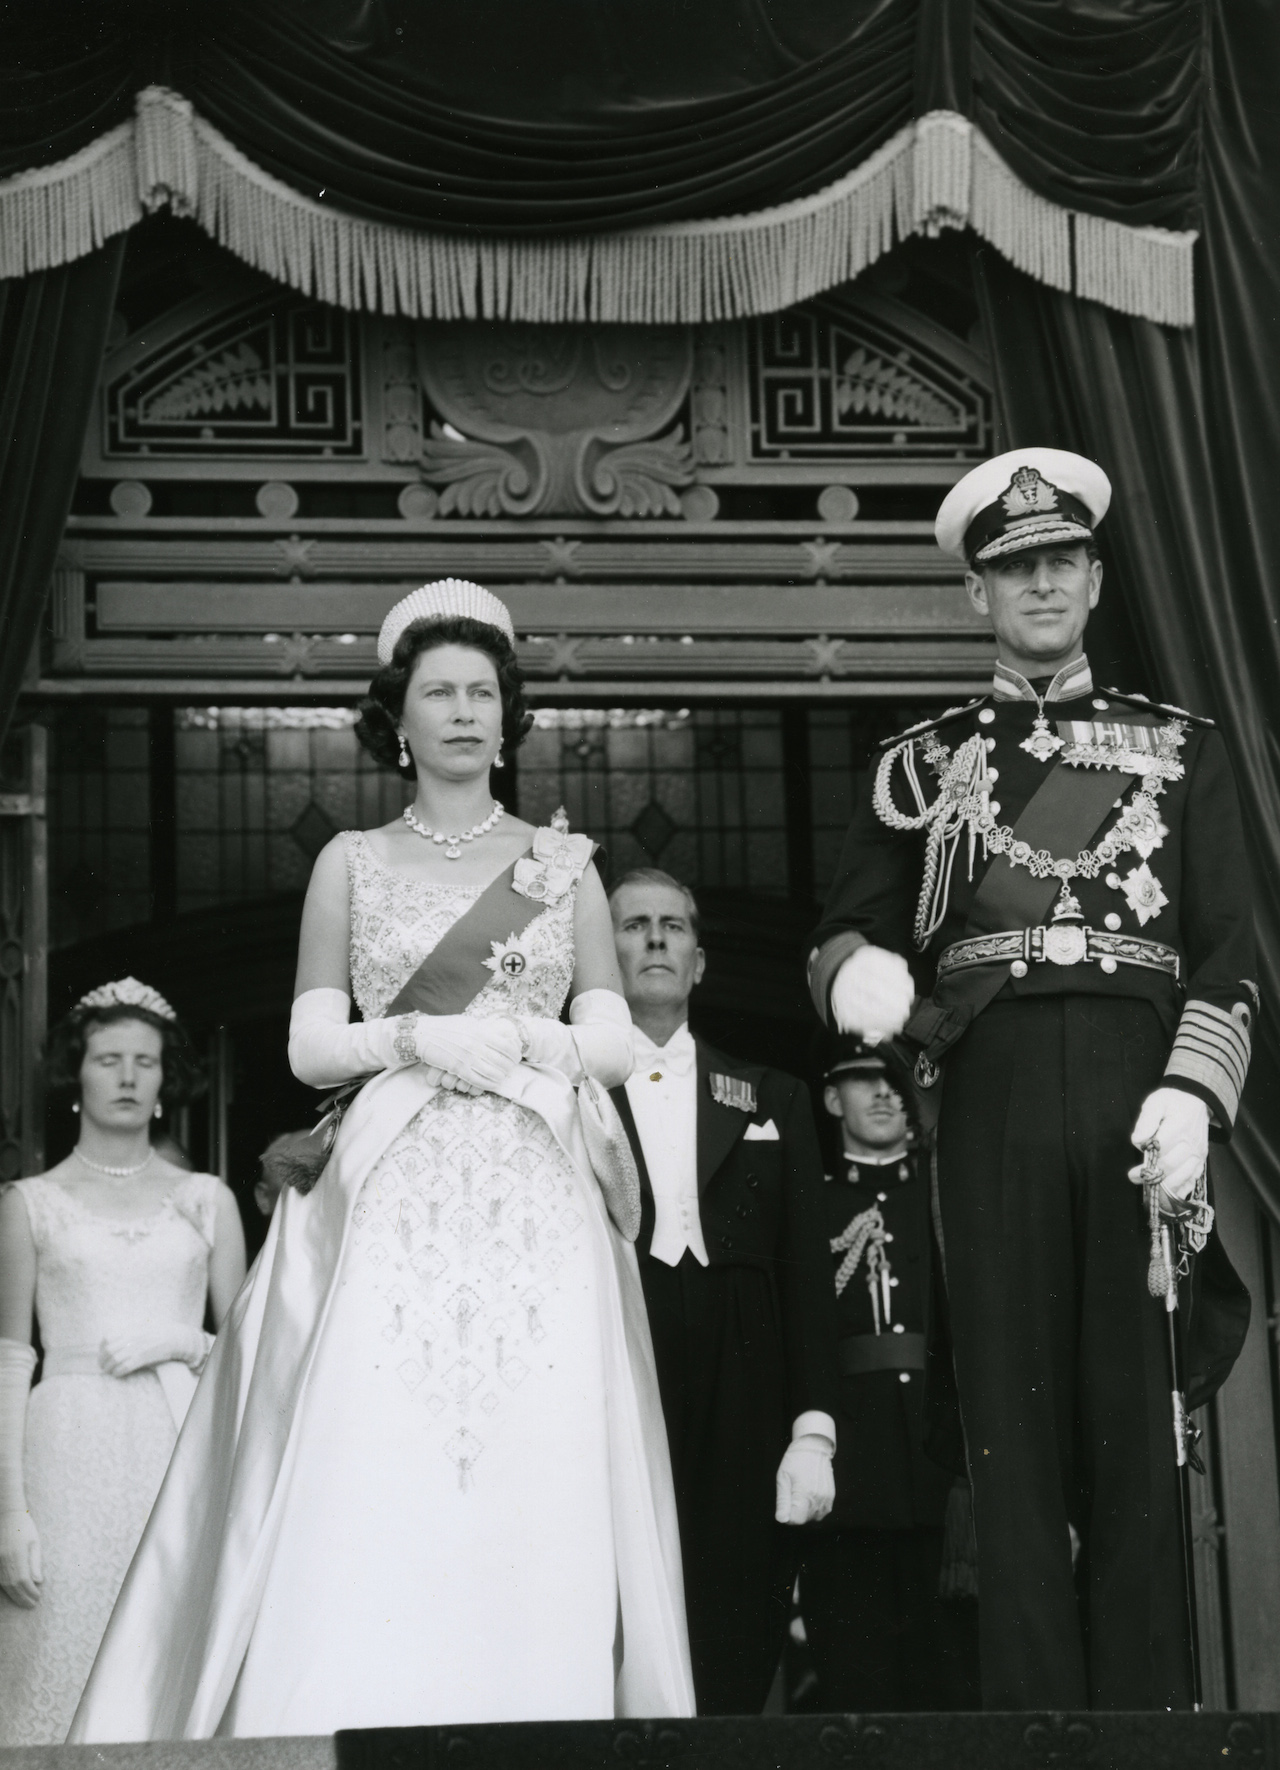 The Crown season 2 royals - Queen Elizabeth II and the Duke of Edinburg are pictured here in 1963 at the opening of the New Zealand parliament. (Photo, Archives New Zealand)